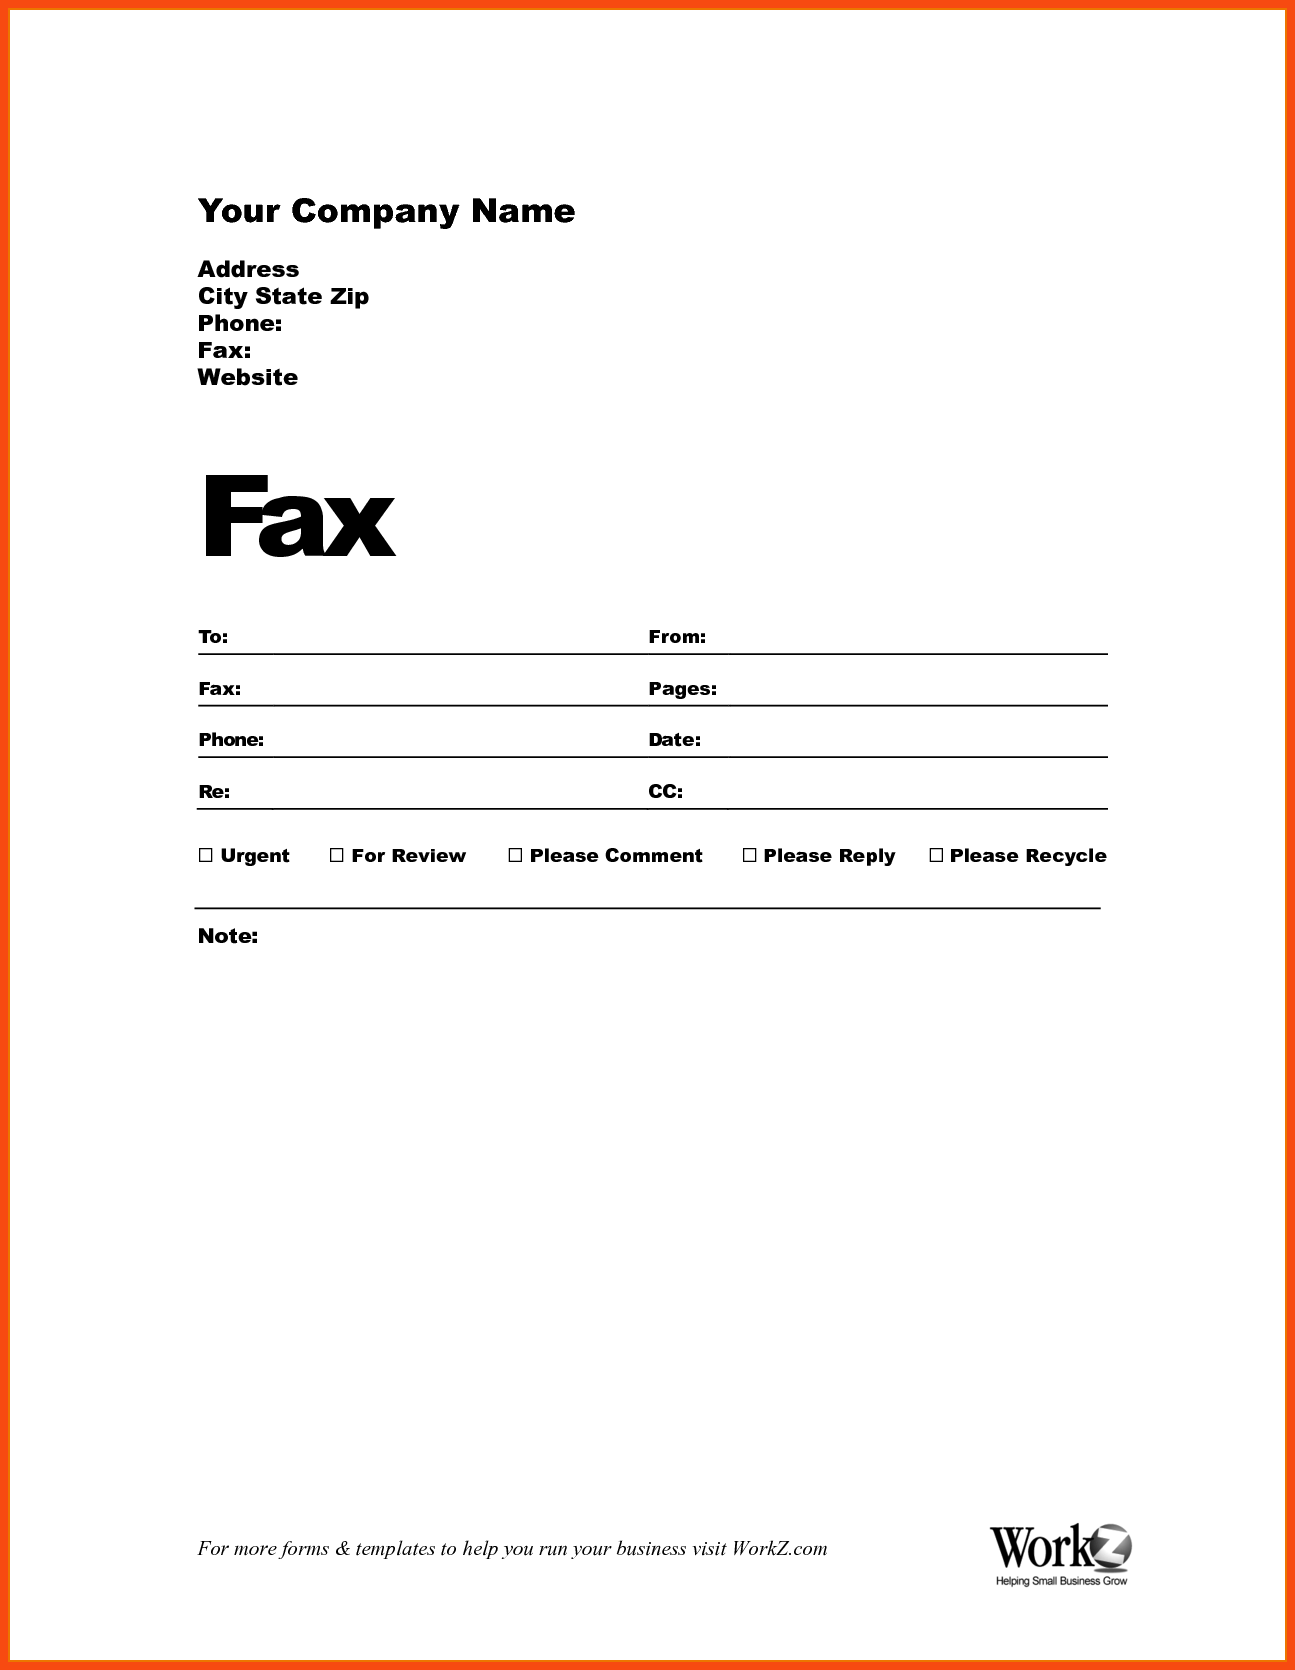 how to fill out a fax cover sheet free fax cover sheet template